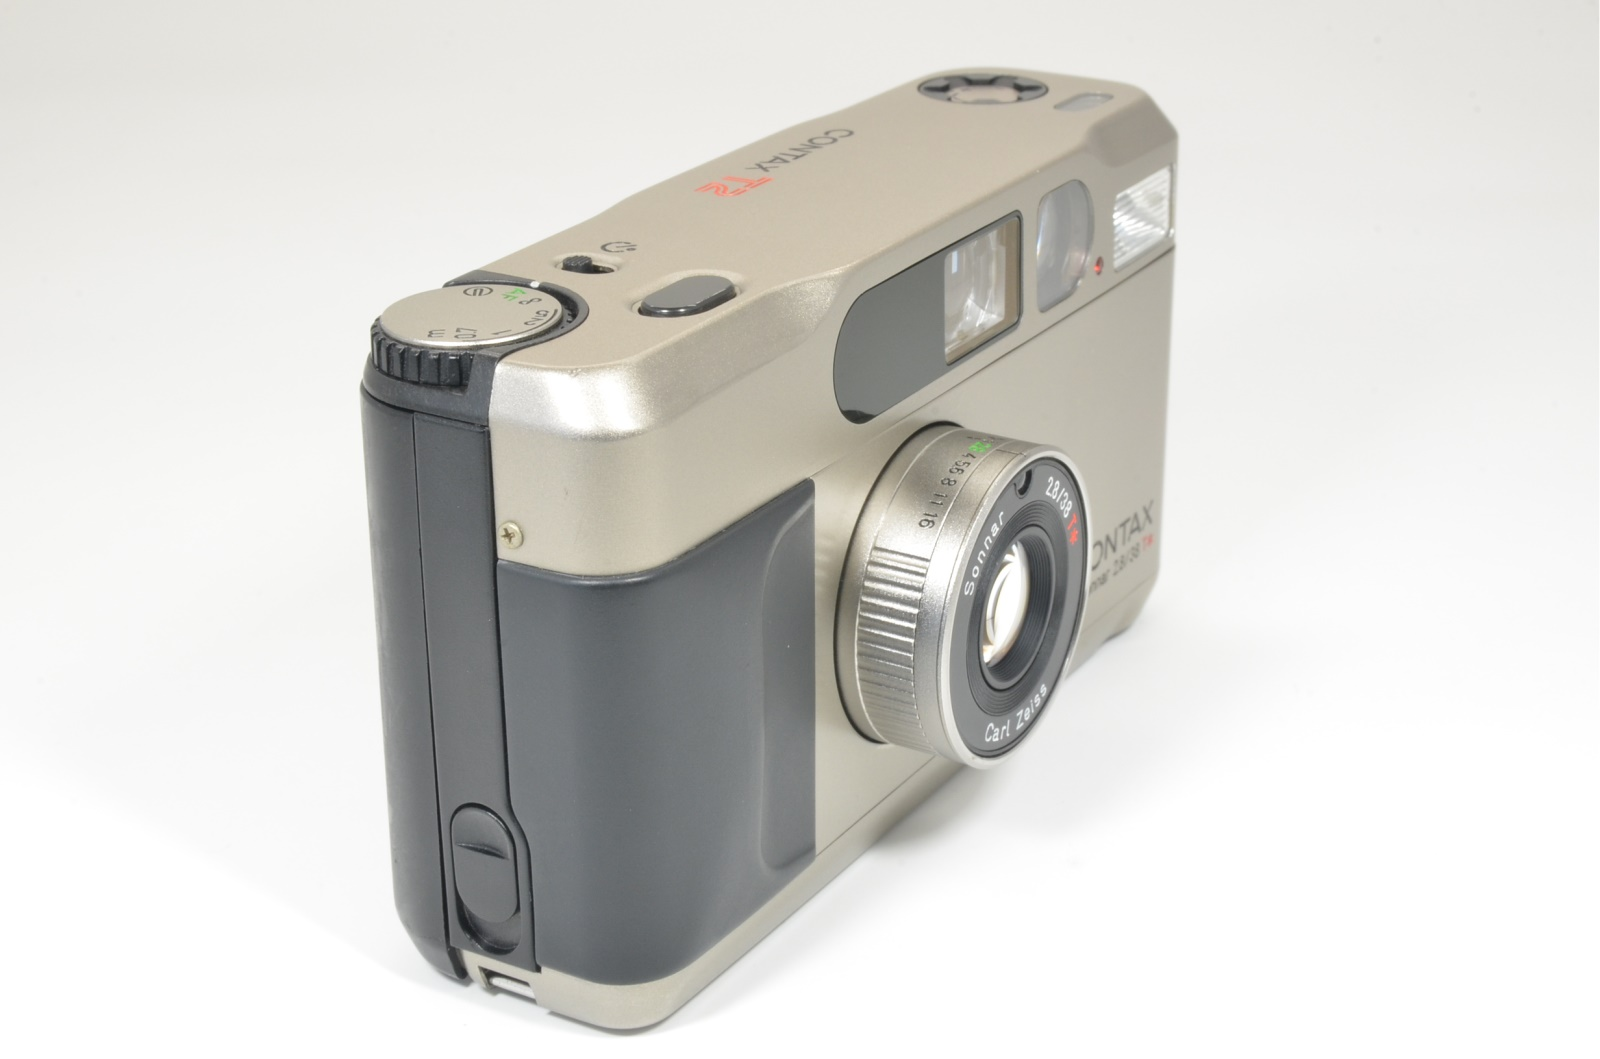 contax t2 titanium silver 35mm film camera cla'd recentry shooting tested